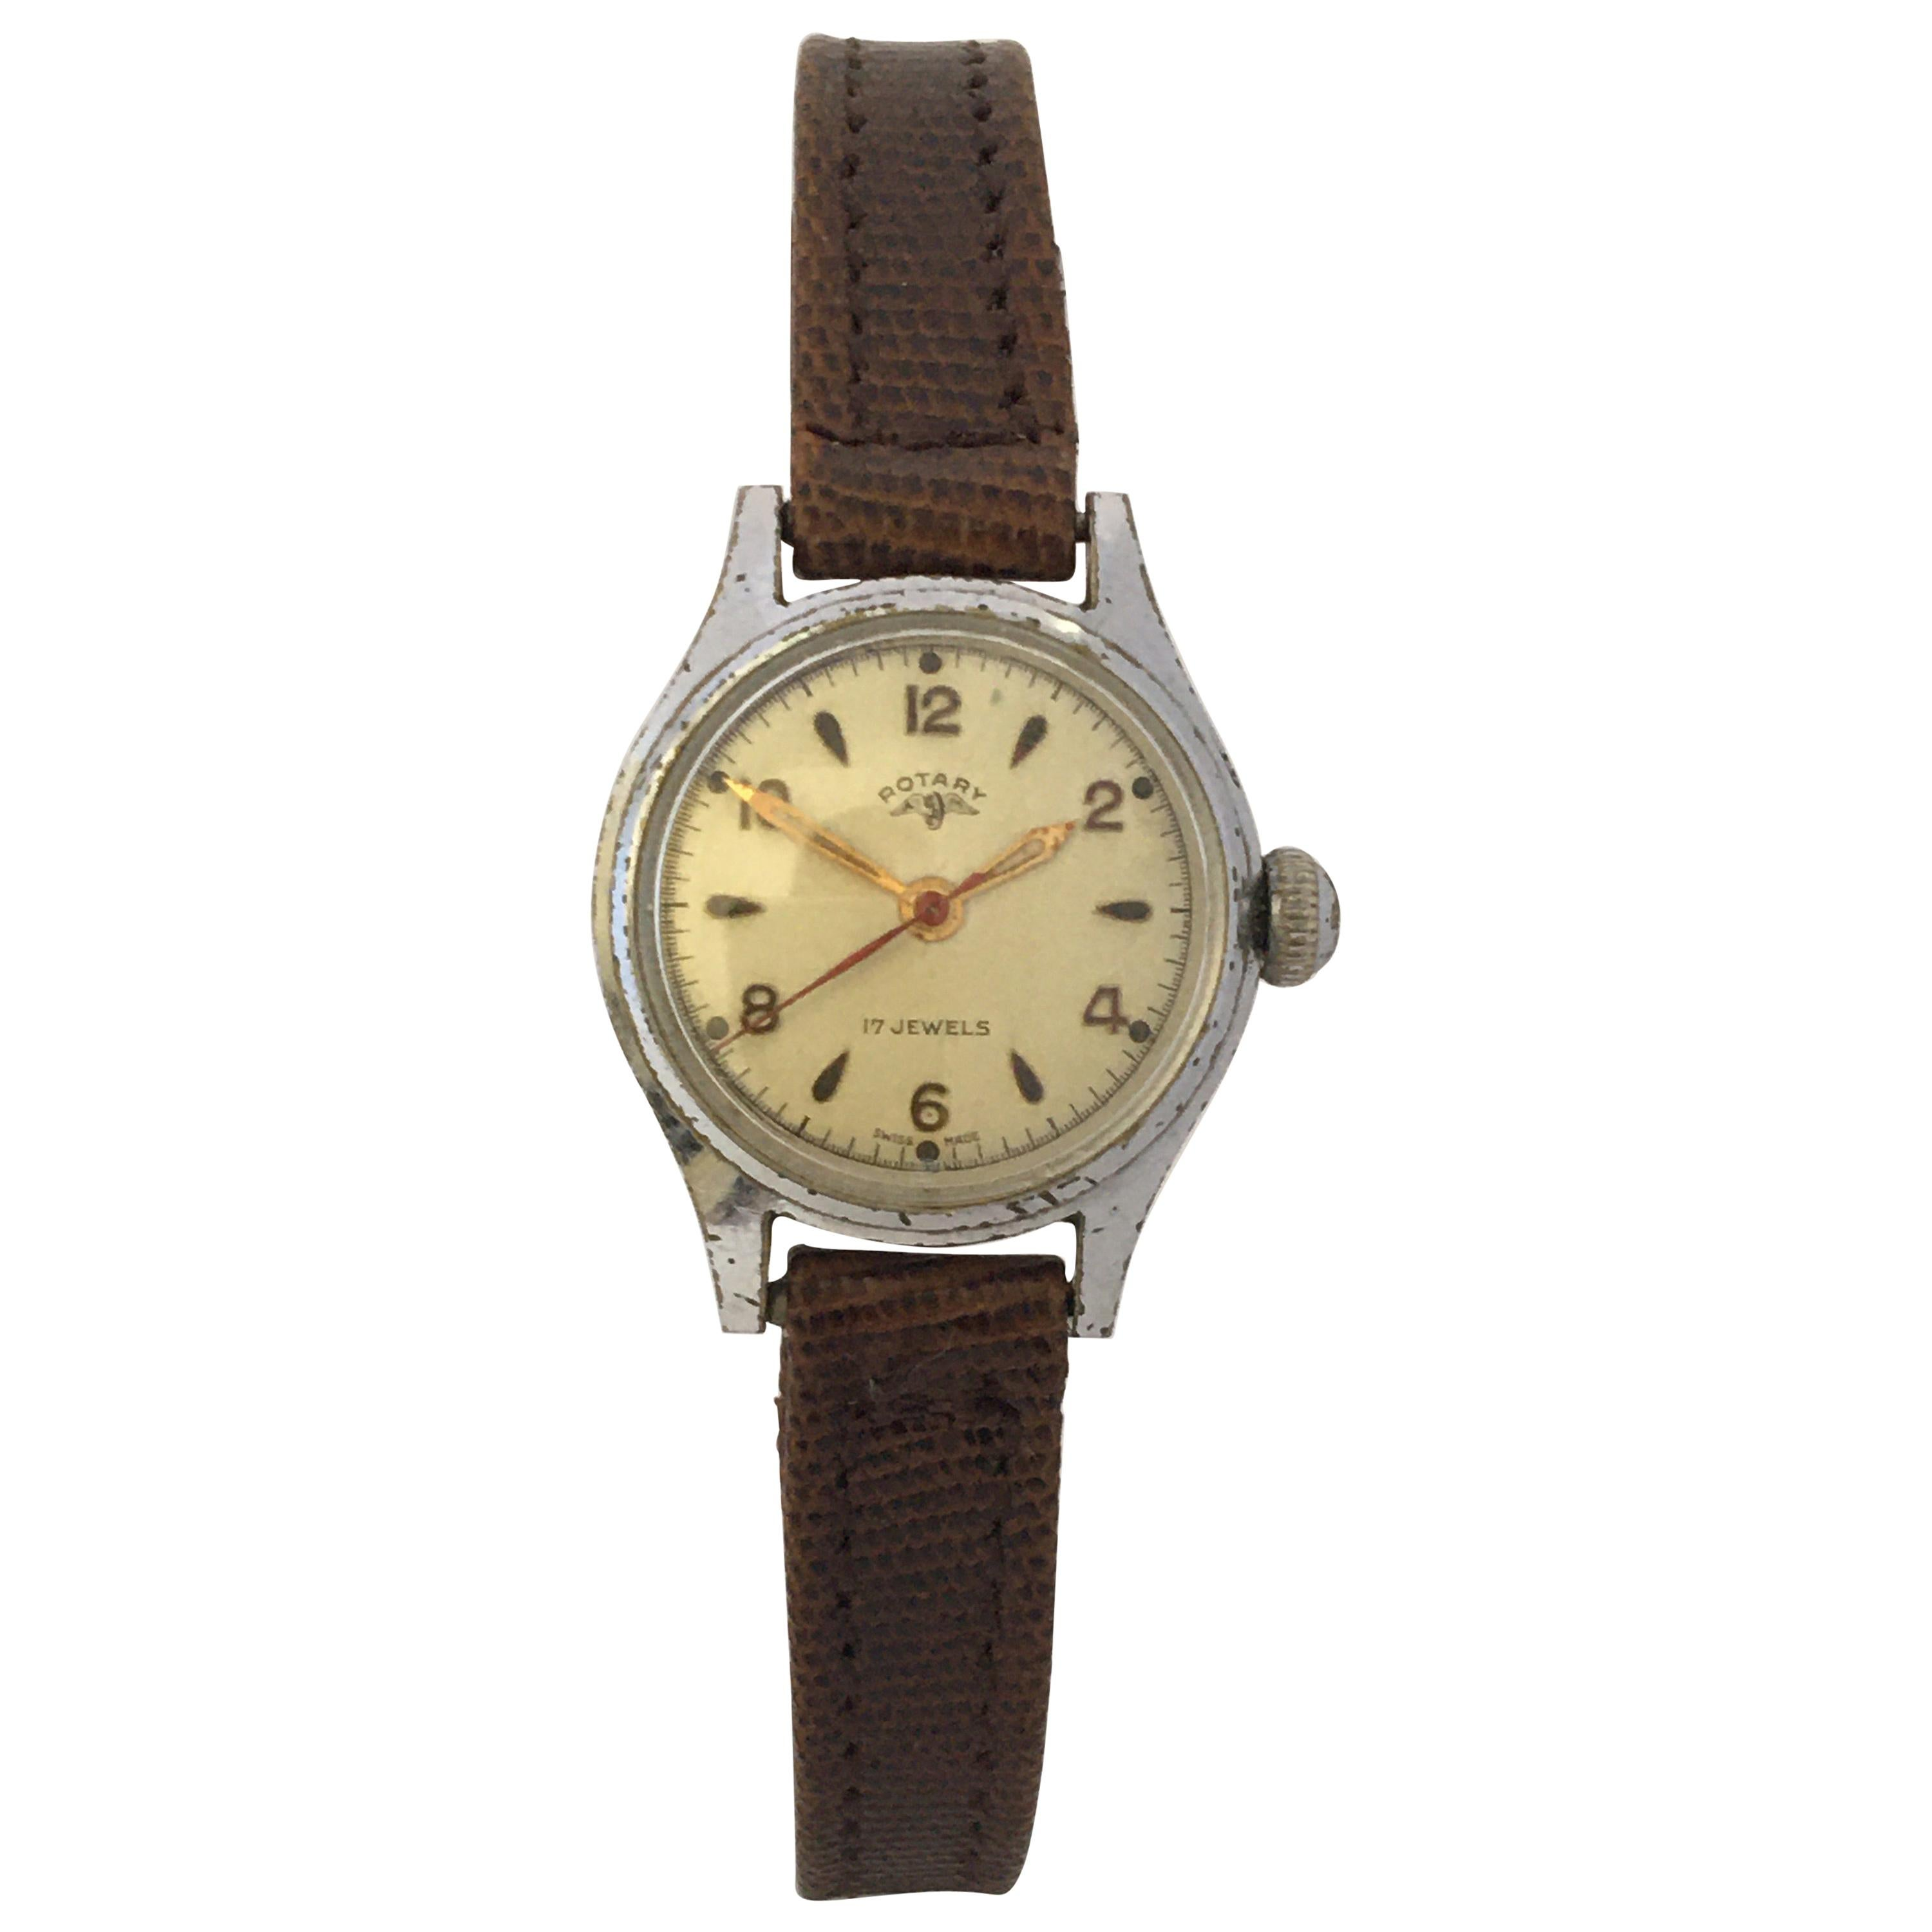 Vintage 1940s Silver Plated Rotary Ladies Mechanical Watch